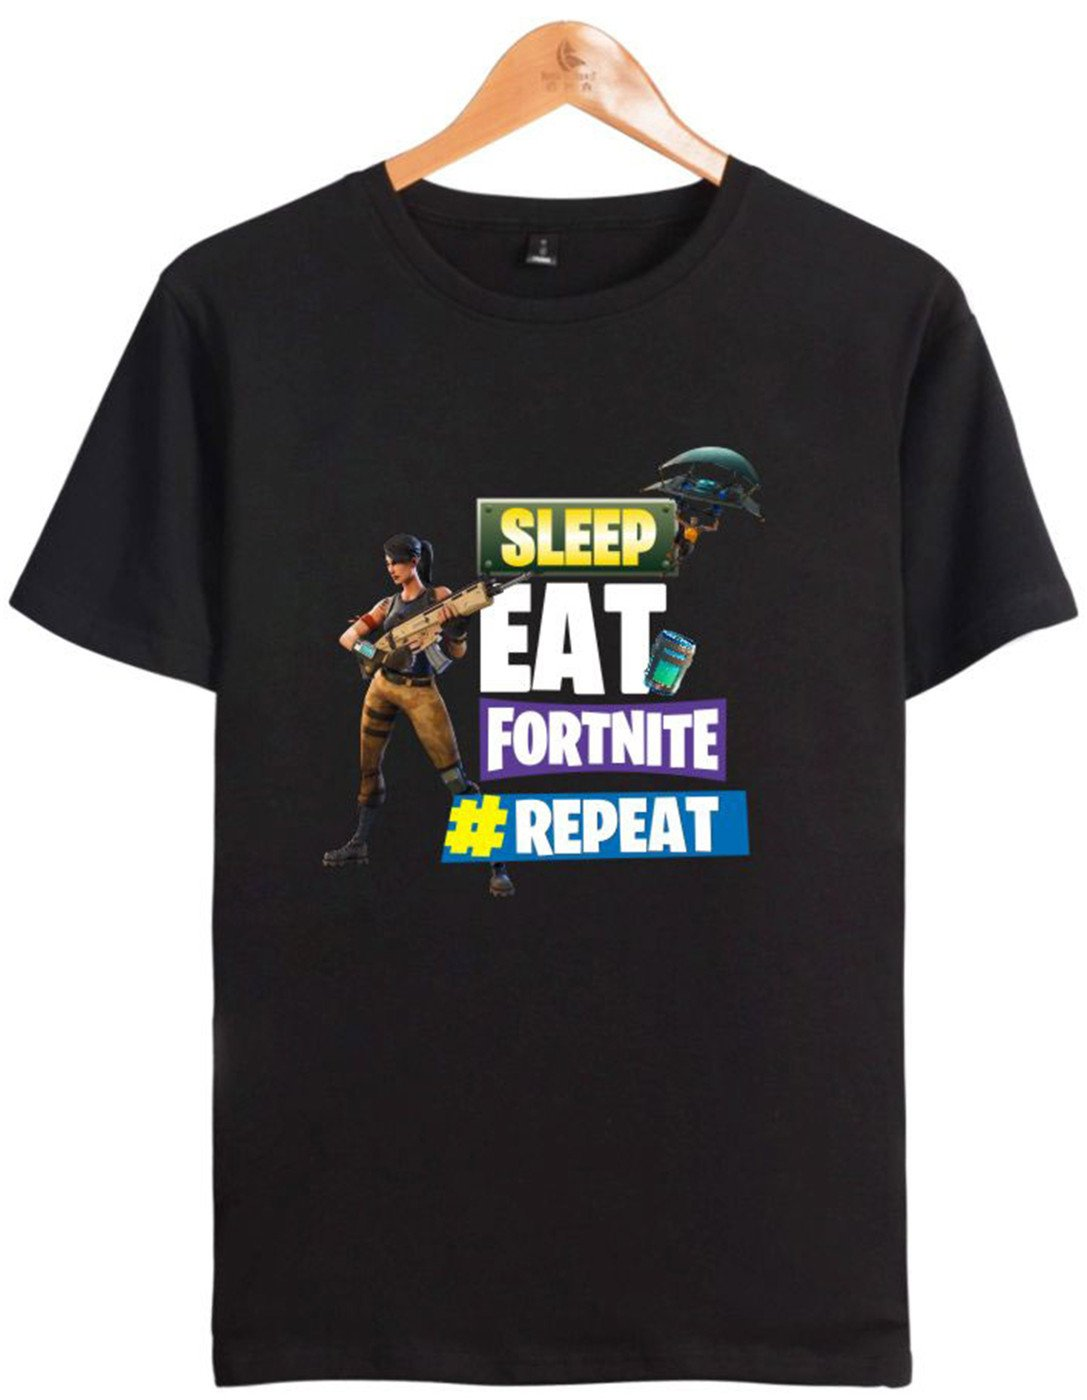 SERAFHY Unisex T-Shirt Fortnite Keep Calm e Make a Dab Sleep T-Shirt per Bambini e Adulti a Maniche Corte in Cotone Top